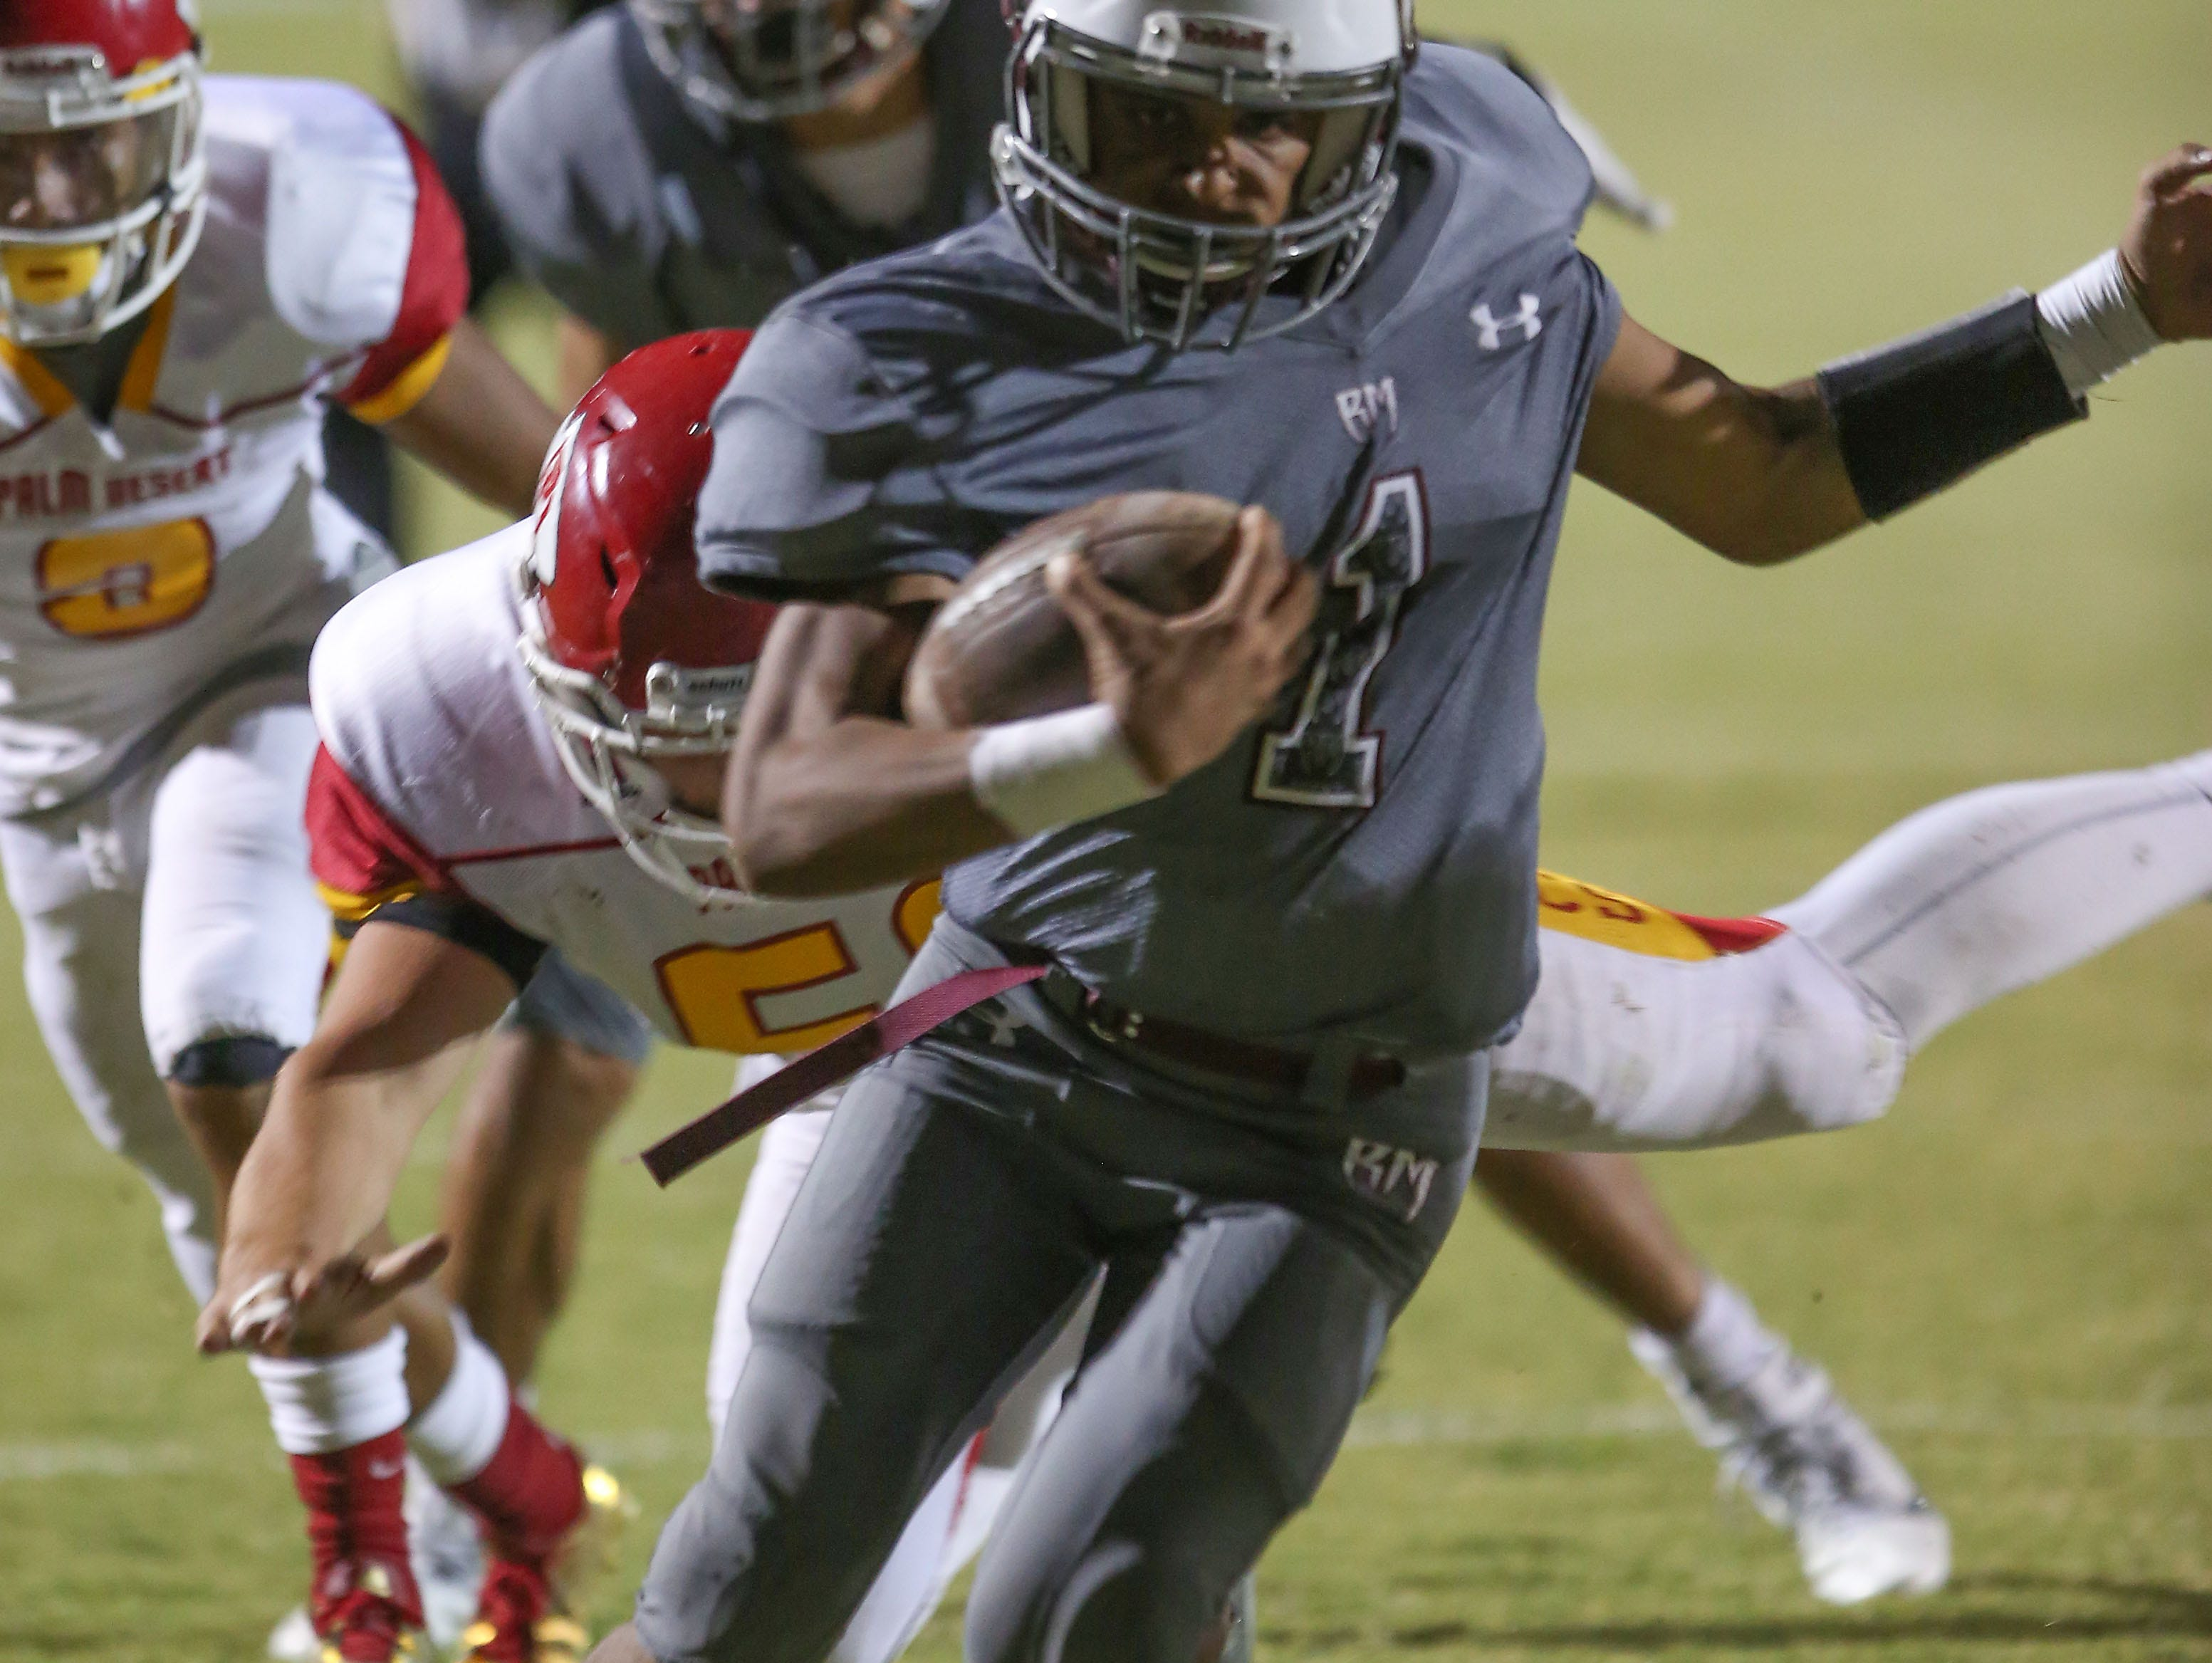 Marquus Prior of Rancho MIrage runs the ball for a touchdown against Palm Desert, September 15, 2016.